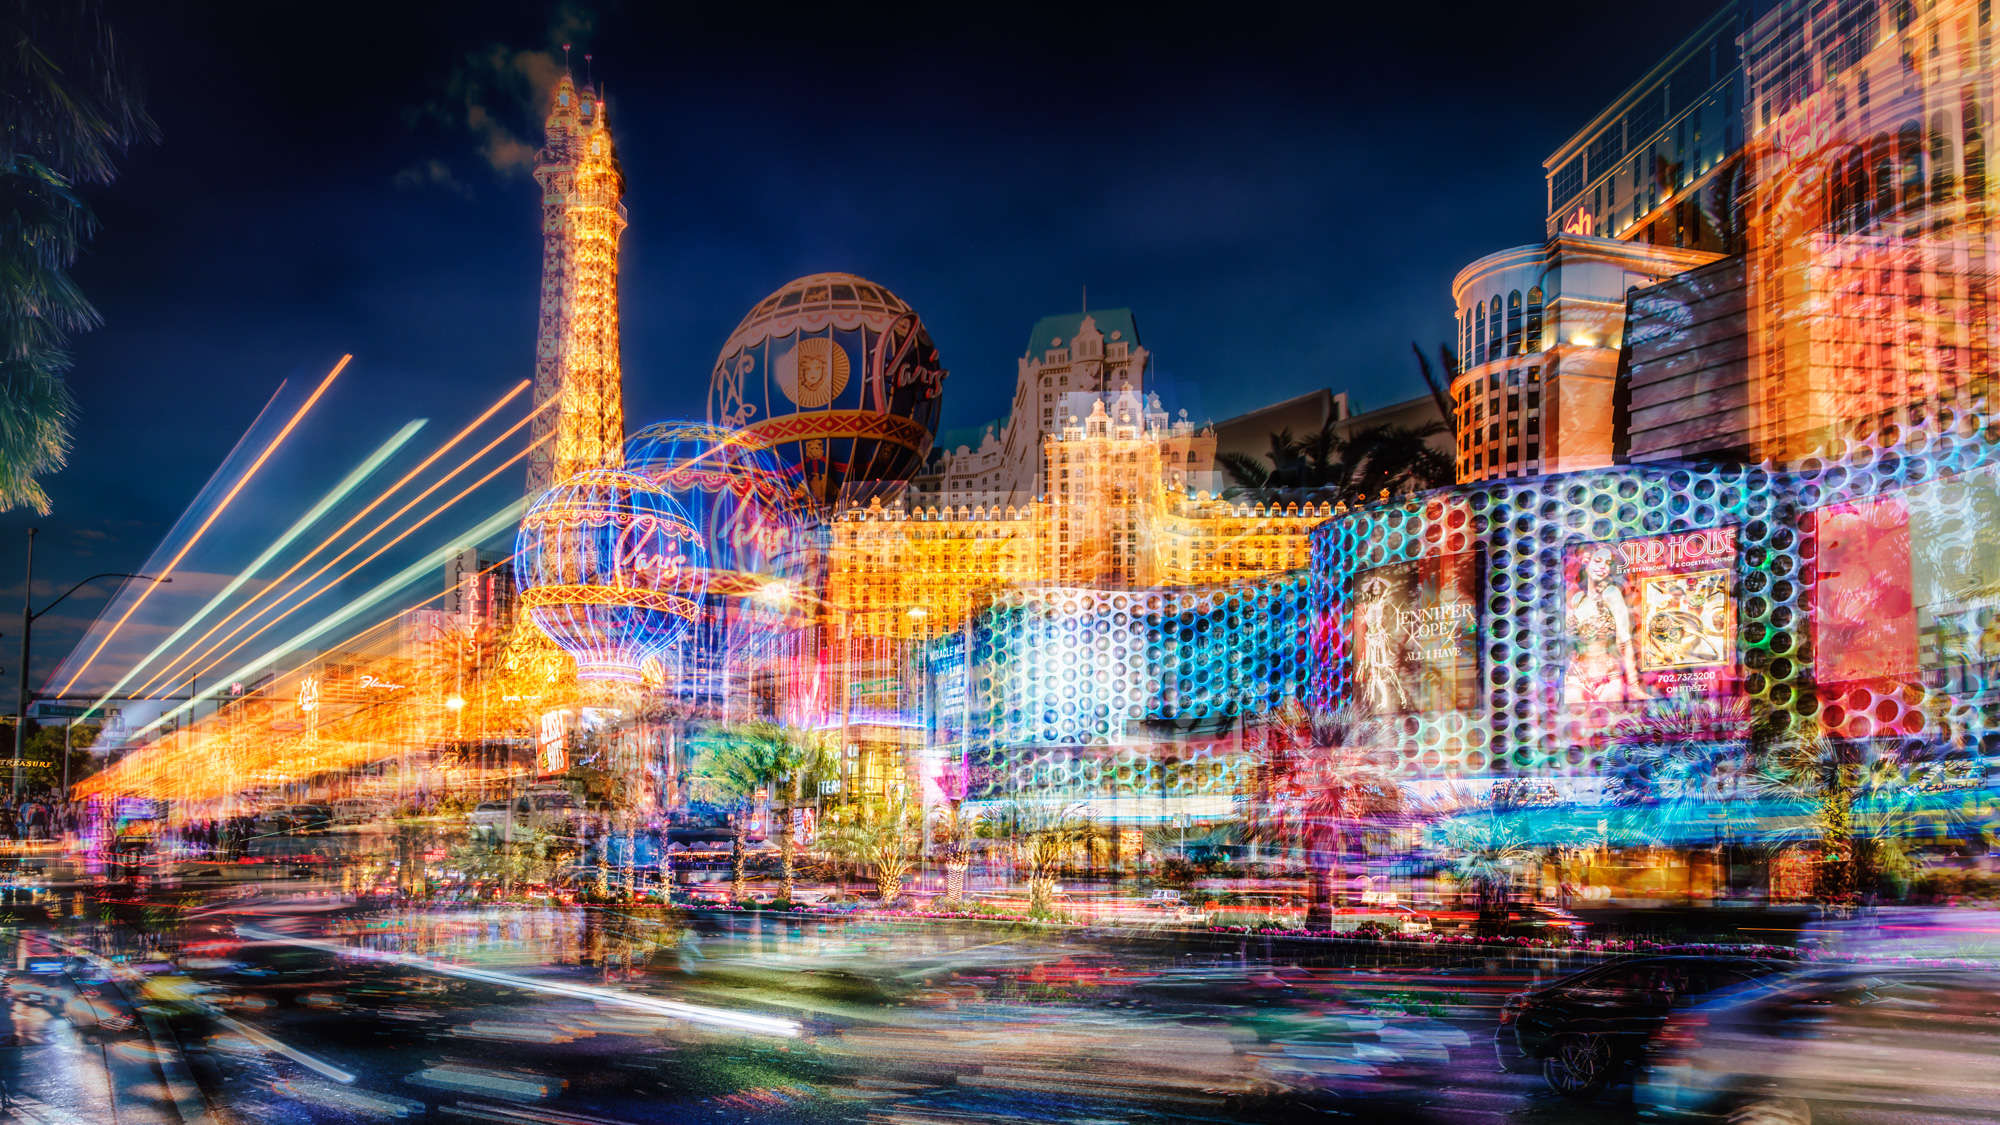 Laurent Dequick - Las Vegas Strip I